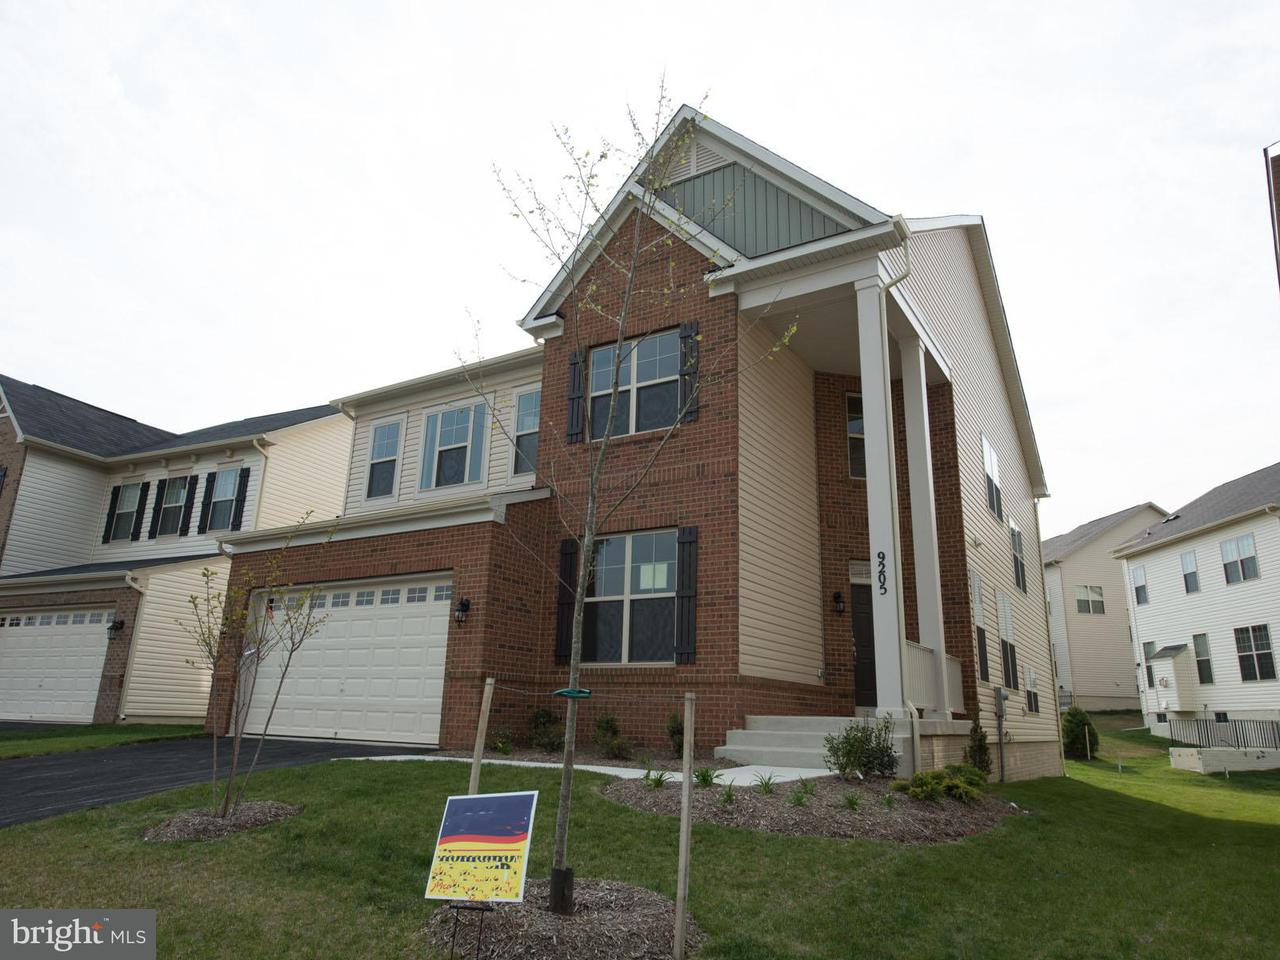 Single Family Home for Sale at 2509 SIR MICHAEL Place 2509 SIR MICHAEL Place Glenarden, Maryland 20706 United States